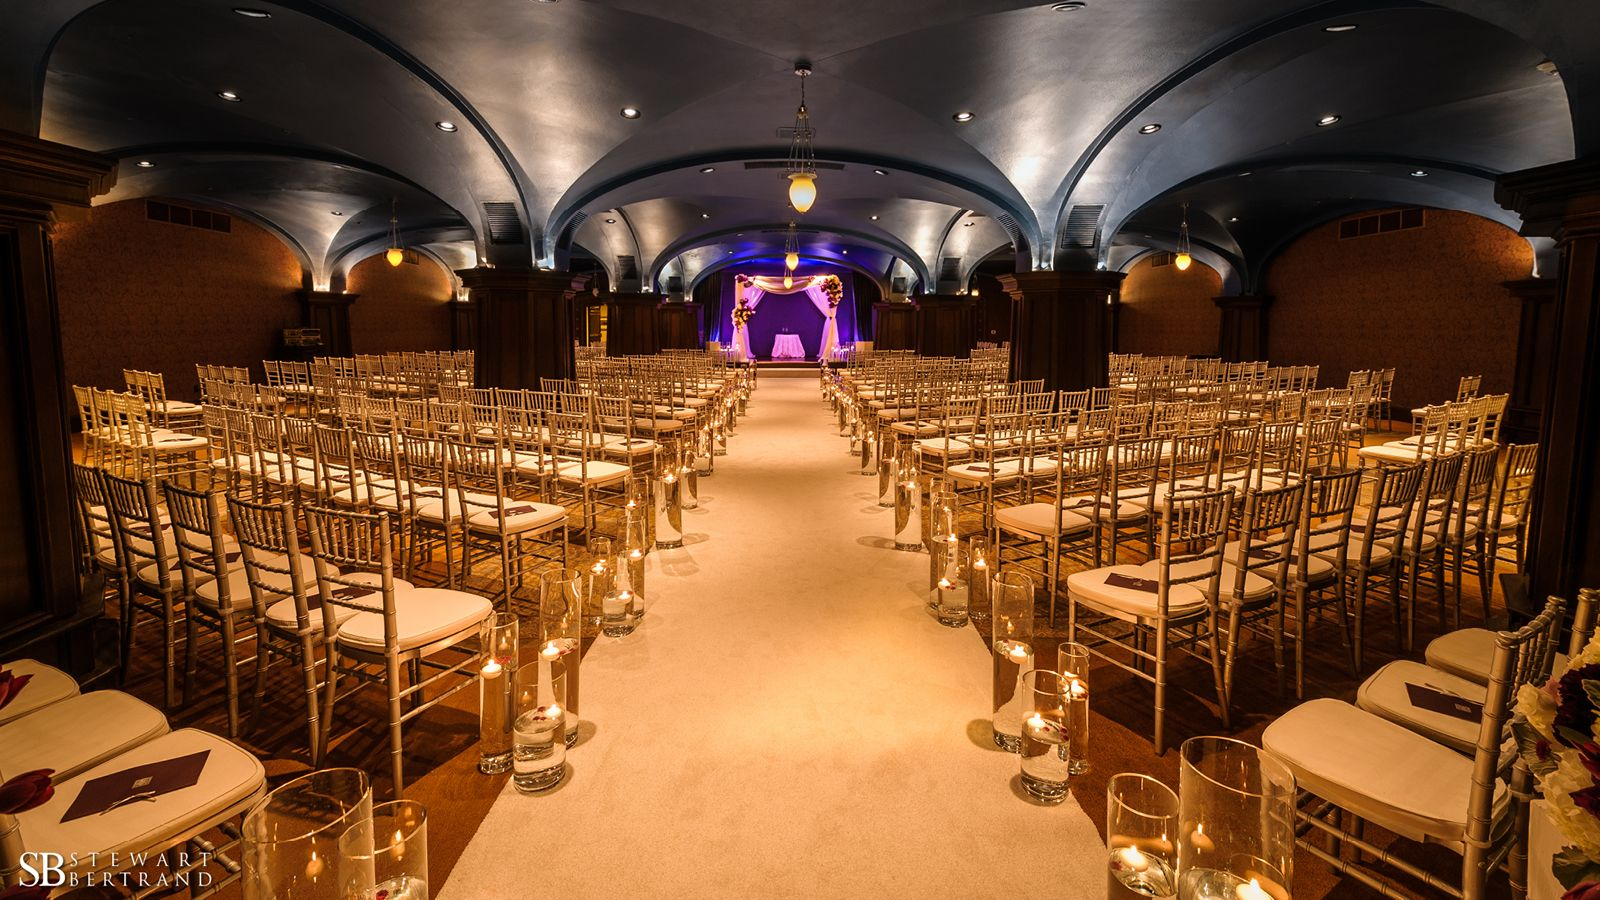 With Gorgeously Appointed Reception Venues And Impeccable Service THE US GRANT A Luxury Collection Hotel Is Premier Destination For San Diego Weddings